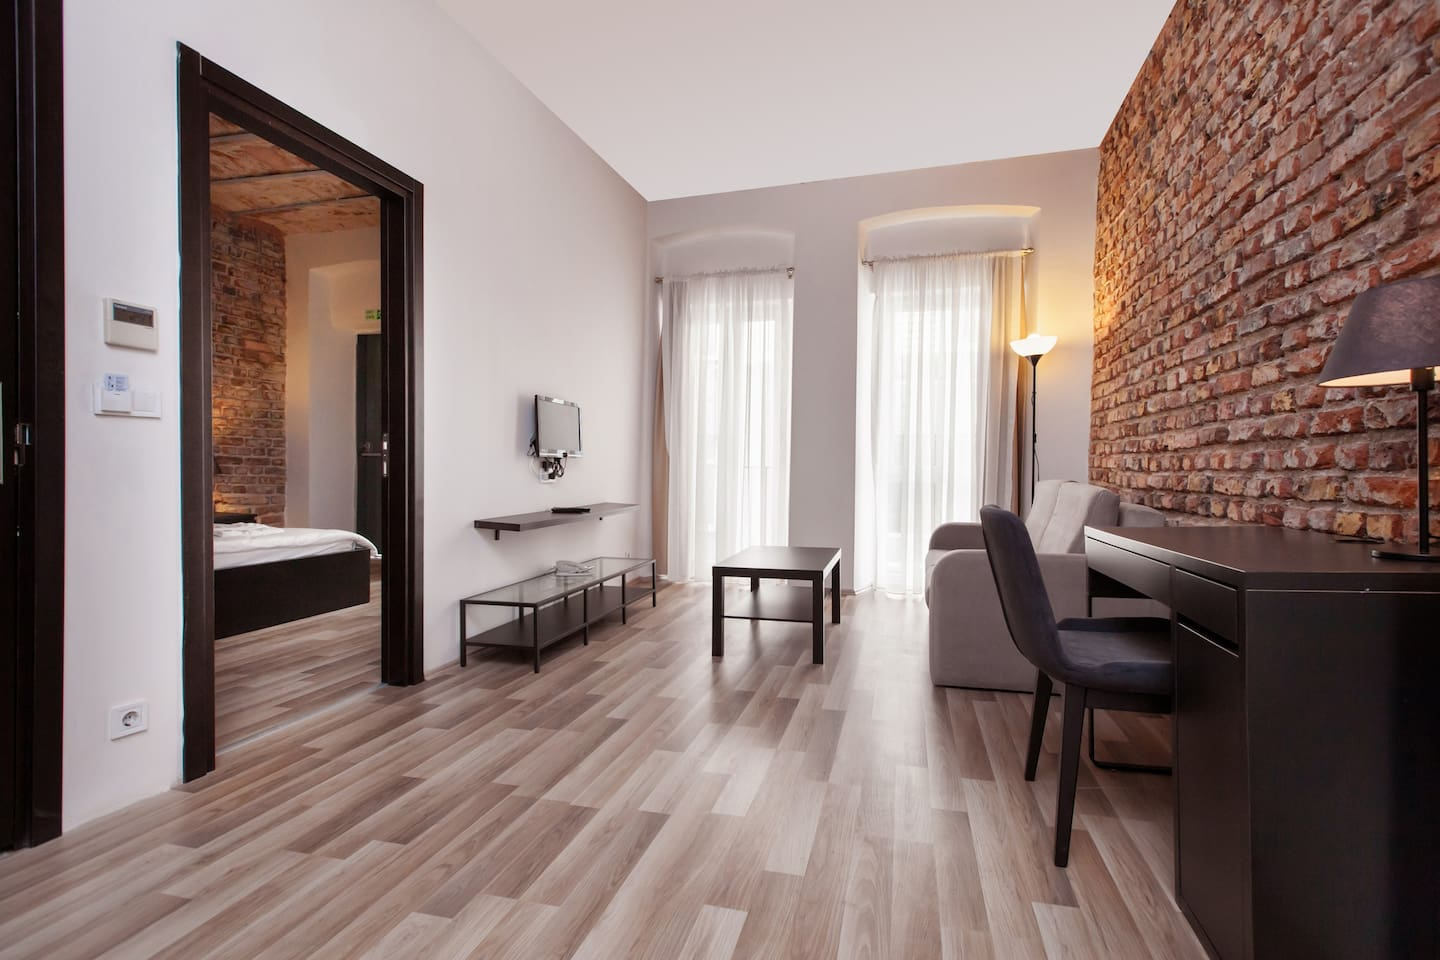 renovated historical building with modern decor..